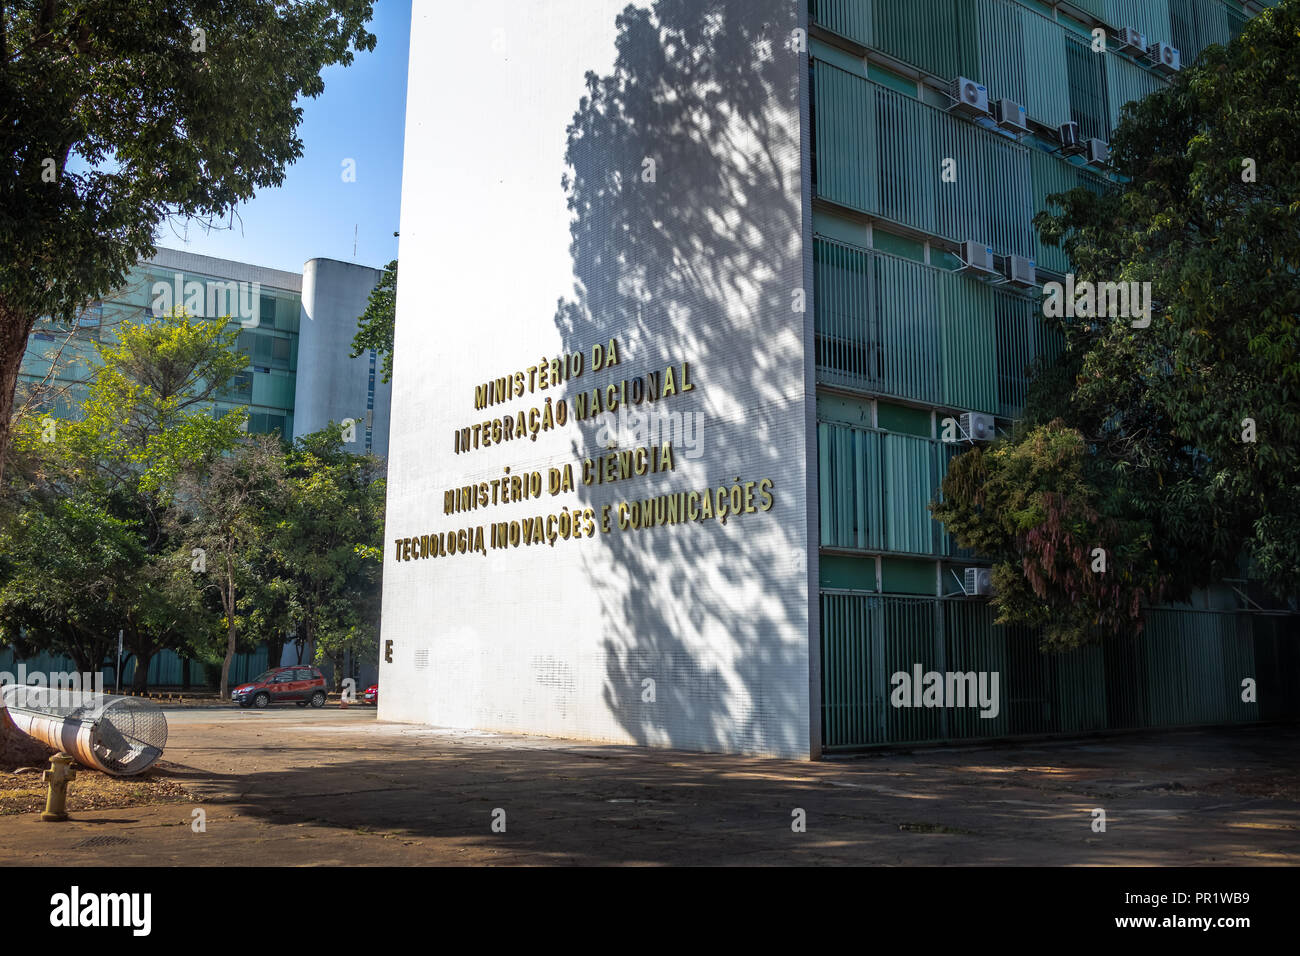 Ministry of National Integration and Ministry of Science, Technology, Innovation and Communication building - Brasilia, Distrito Federal, Brazil - Stock Image